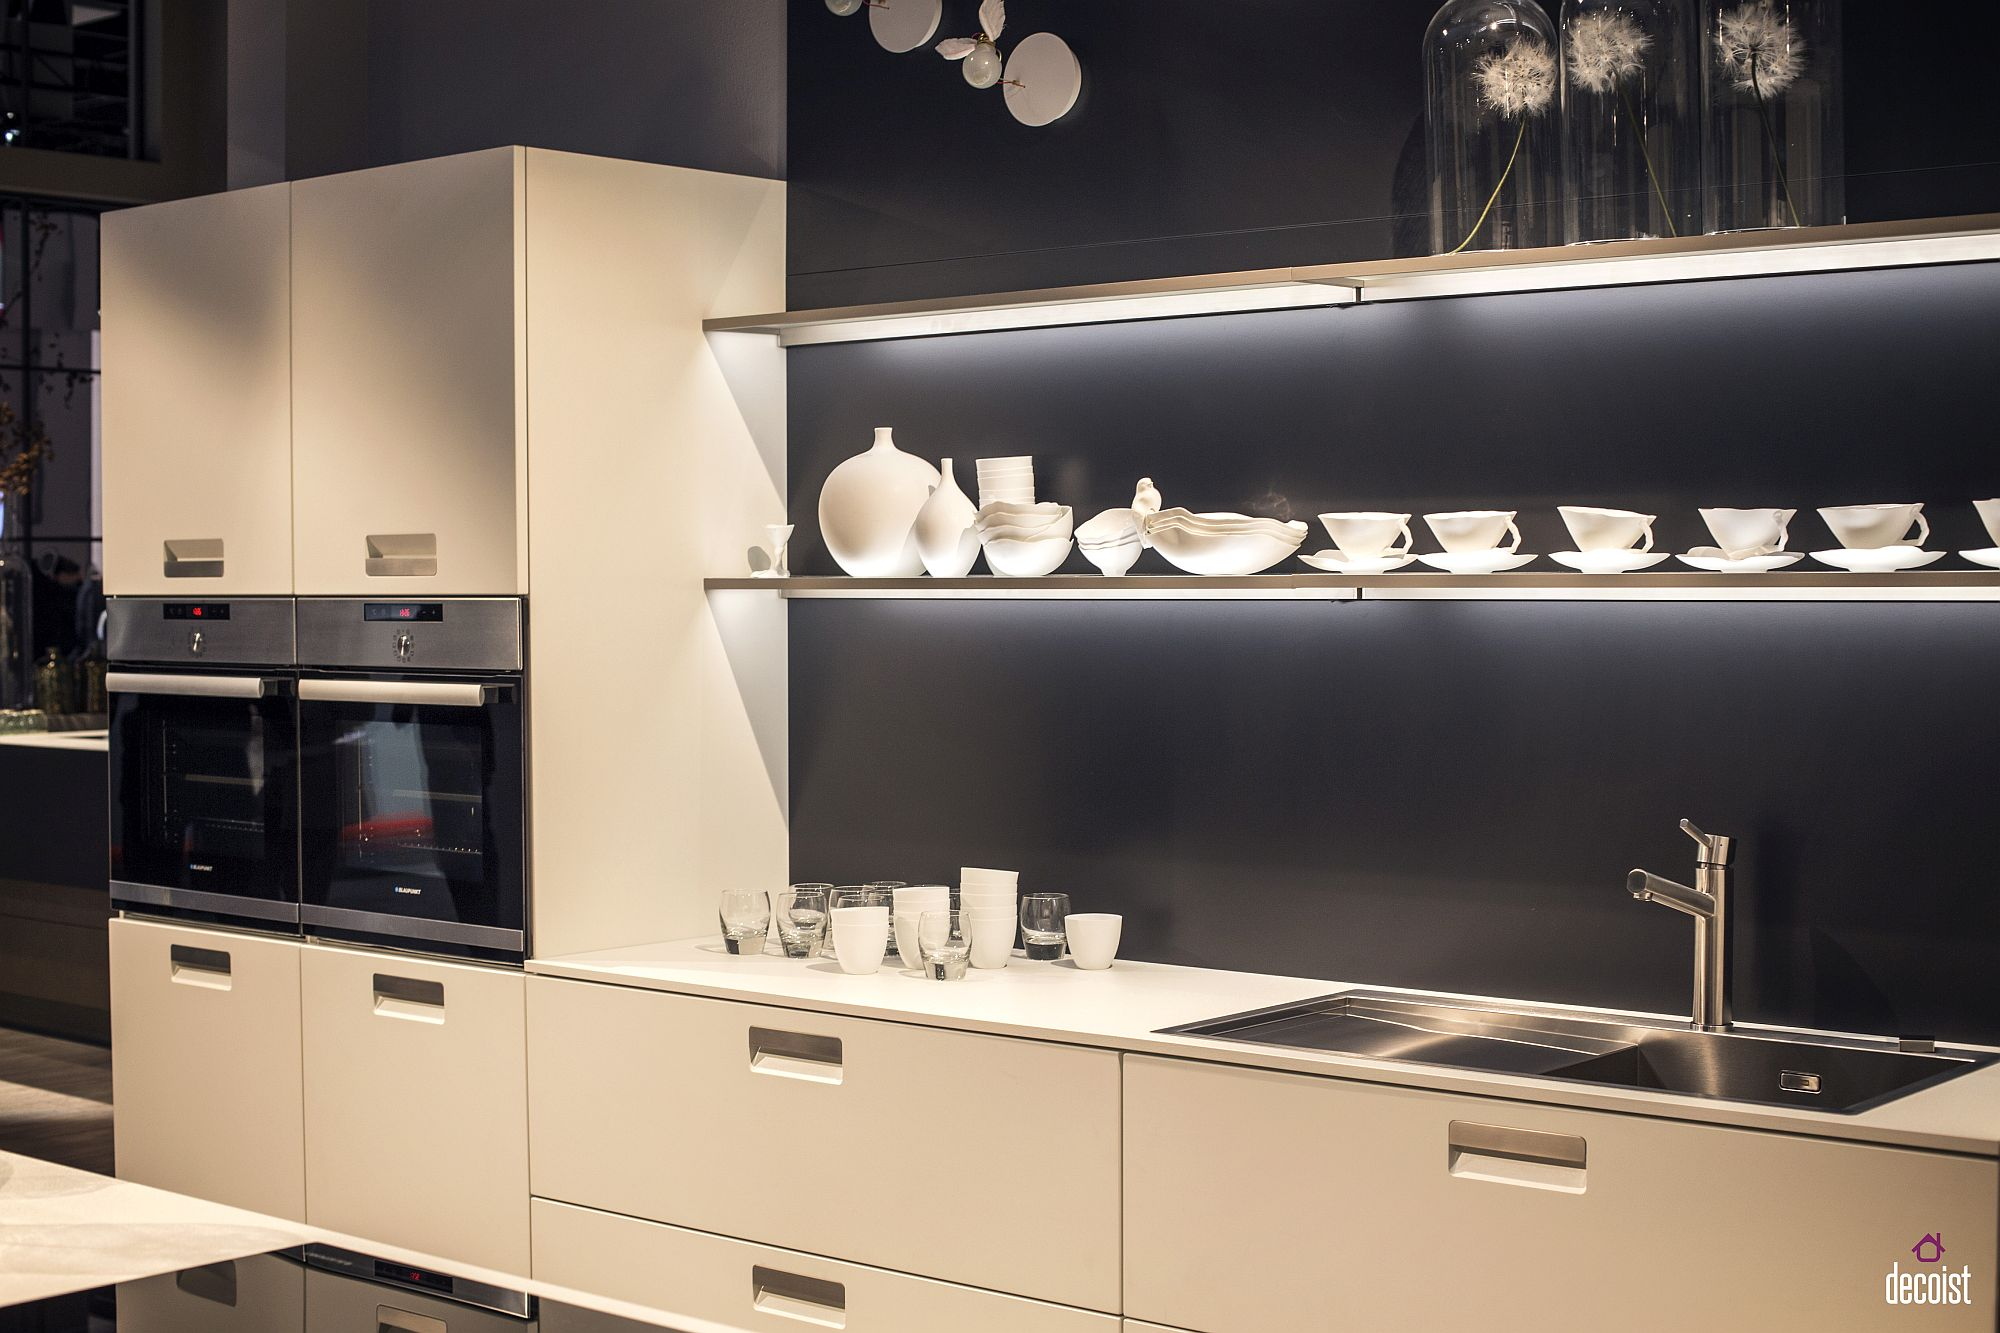 Stunning contemporary kitchen in white and gray with floating shelves and LED strip lighting